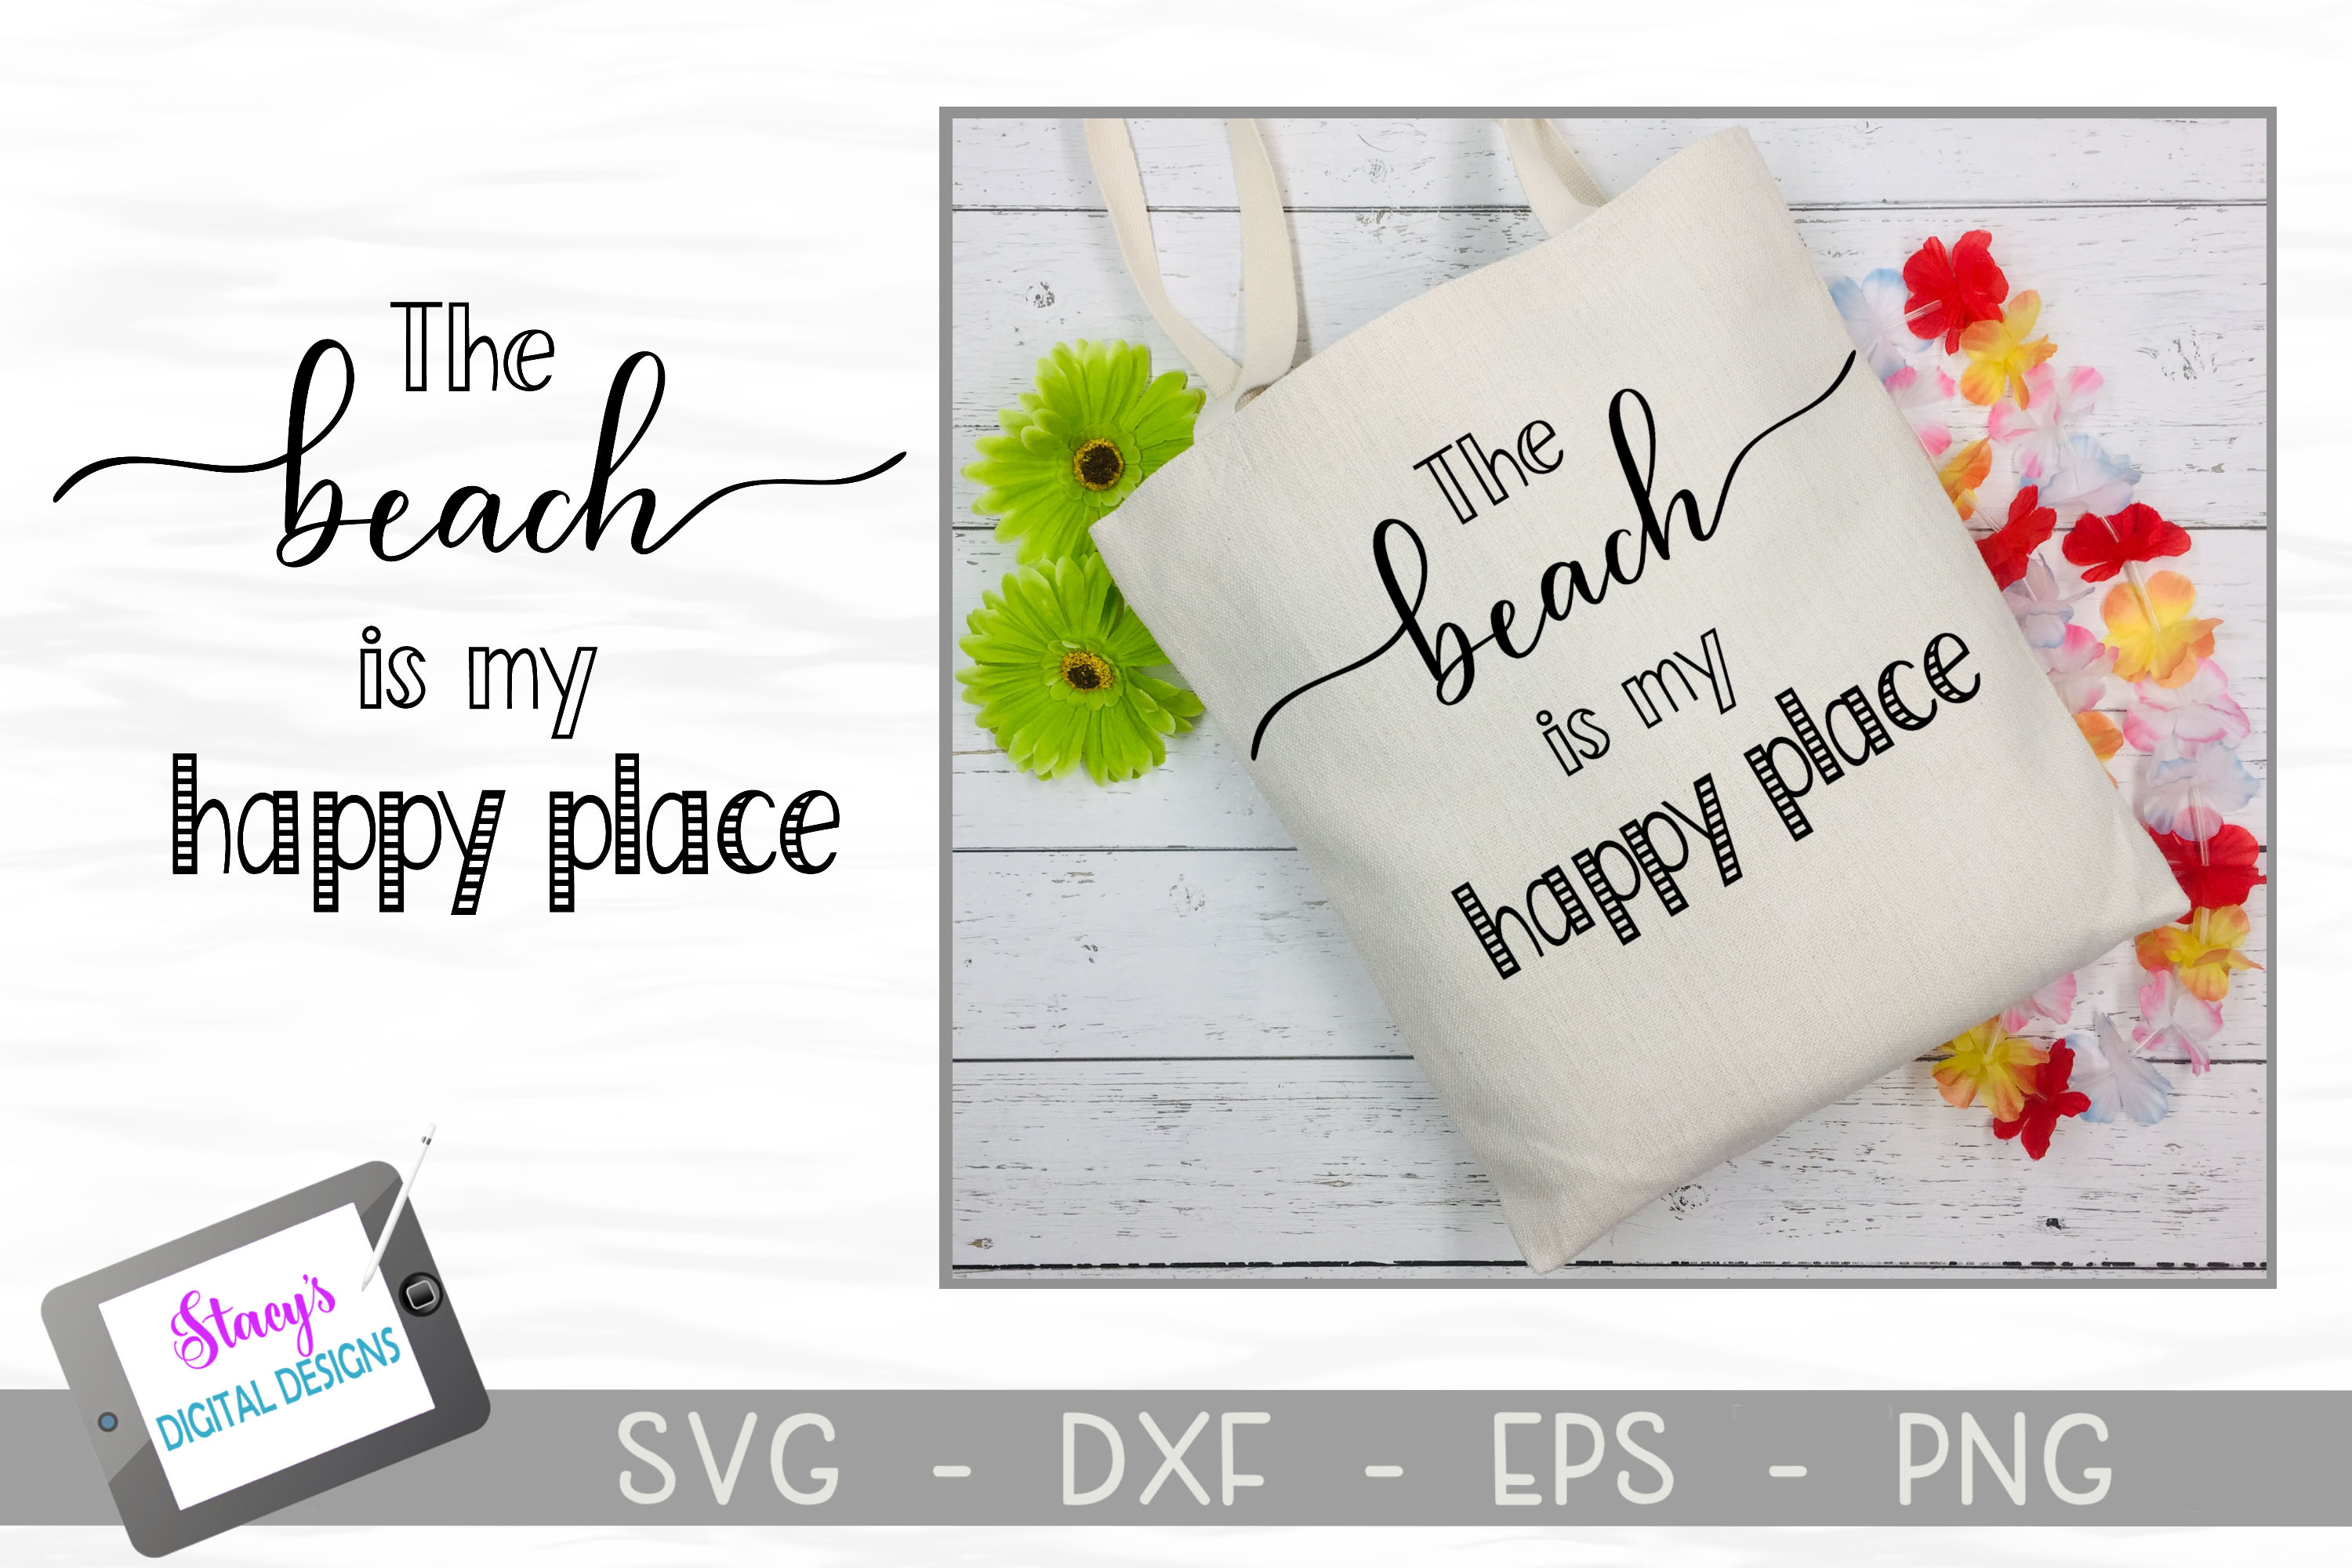 The Beach is My Happy Place SVG - Beach SVG File example image 2